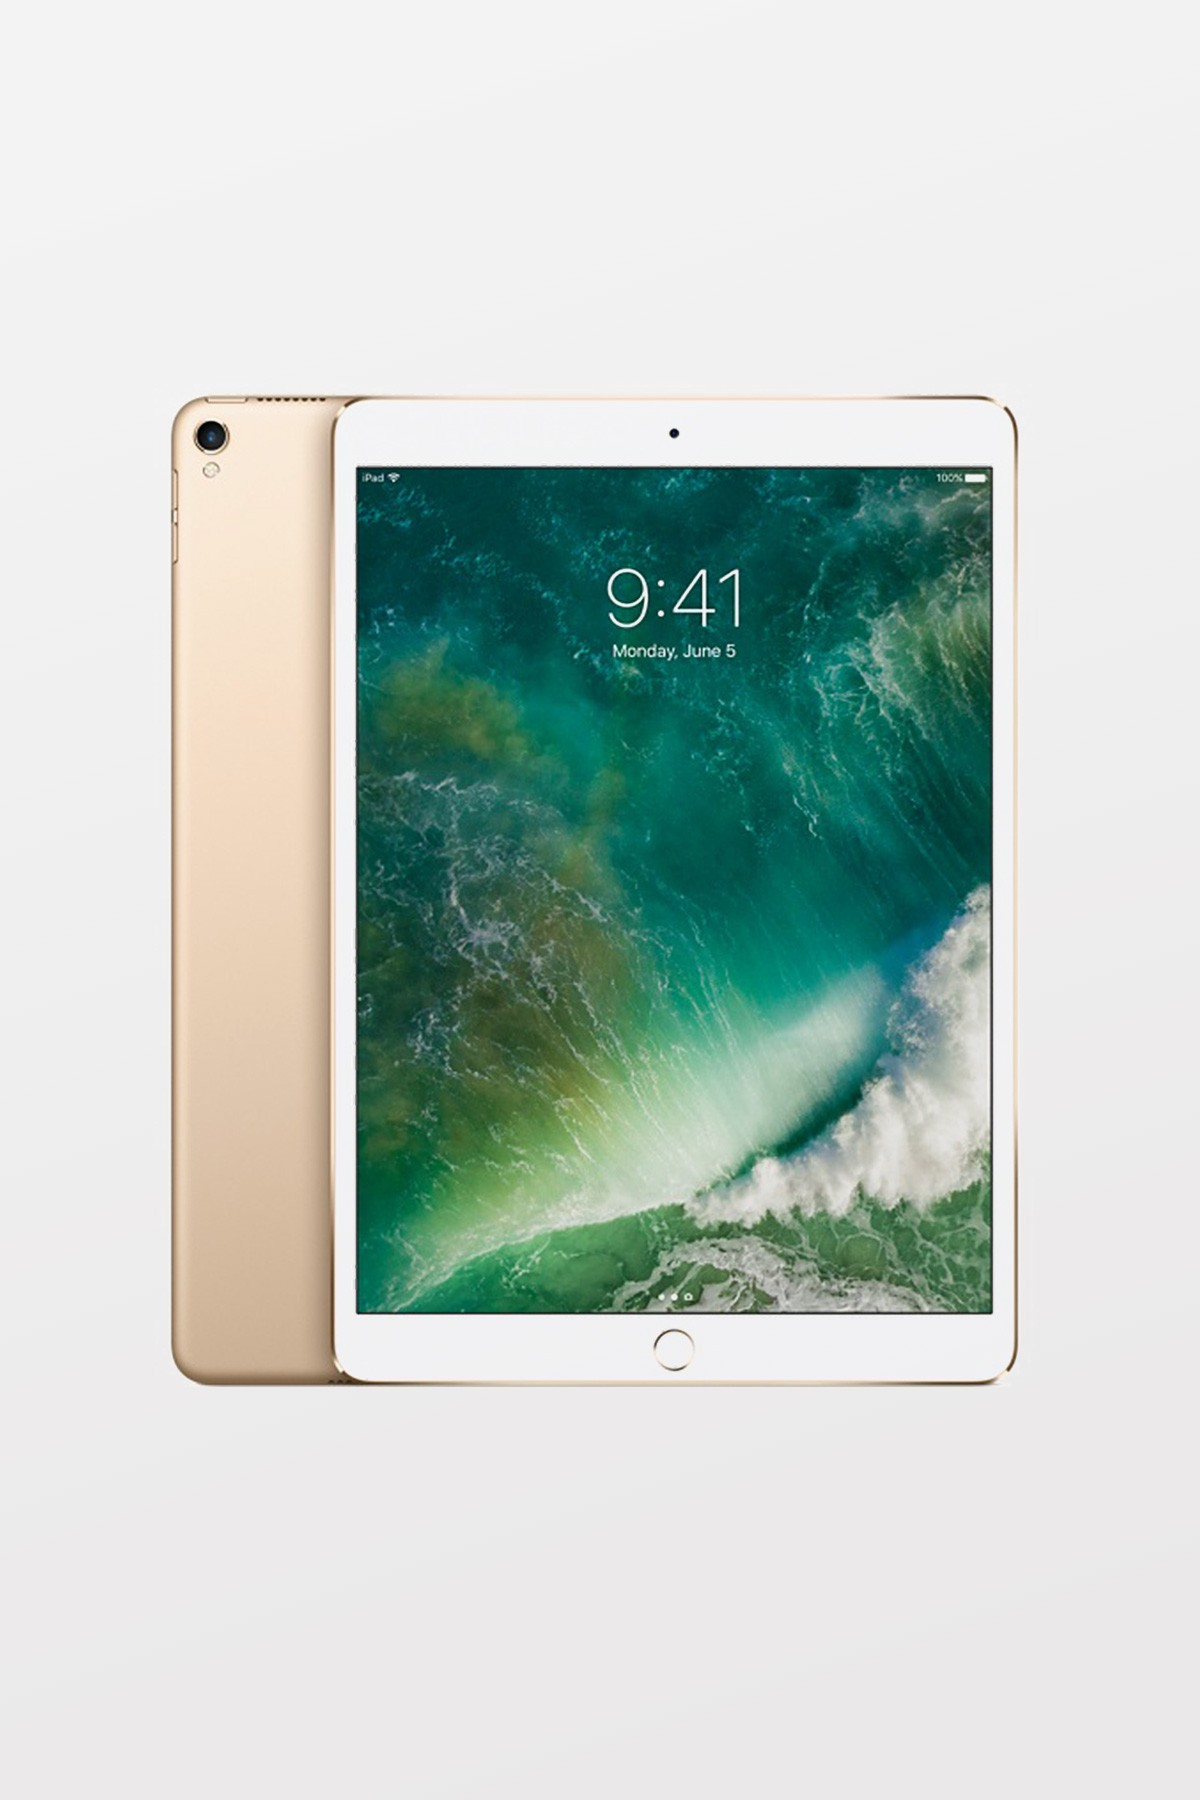 Apple iPad Pro 10.5-inch Wi-Fi + Cellular 256GB - Gold